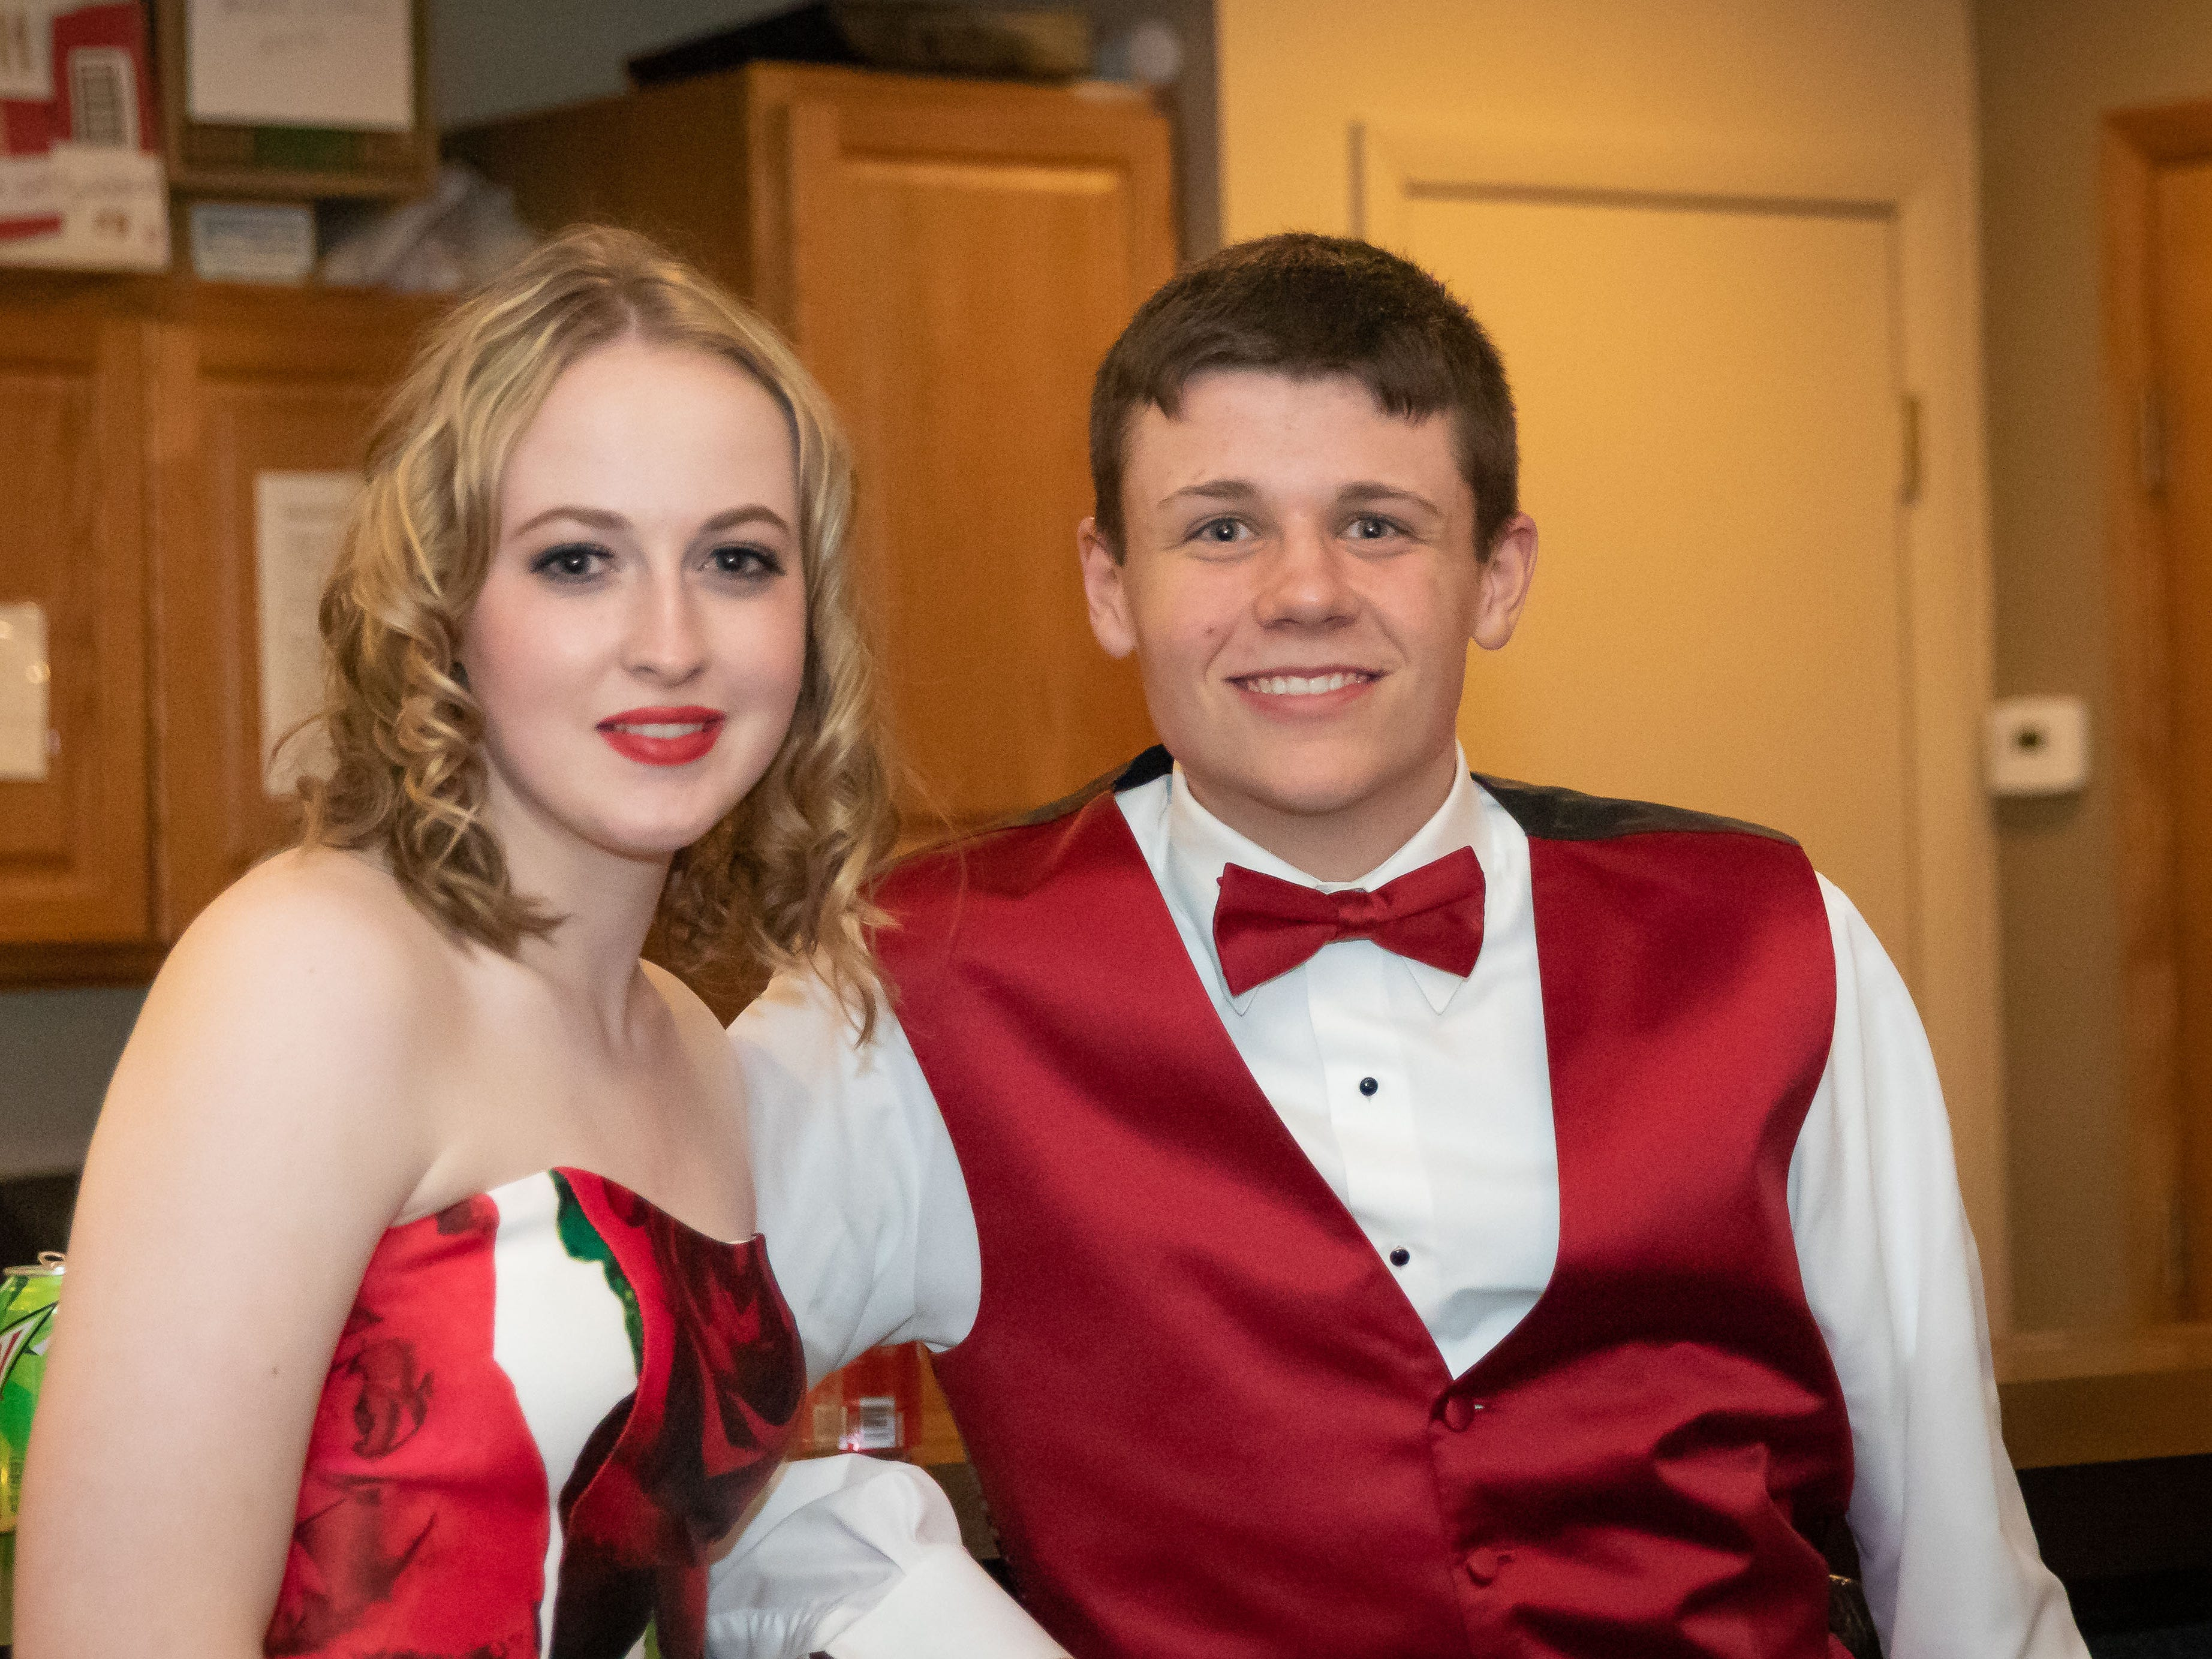 The John Edwards High School prom was held Saturday, April 27, 2019, at the Wisconsin Rapids Elks Club.